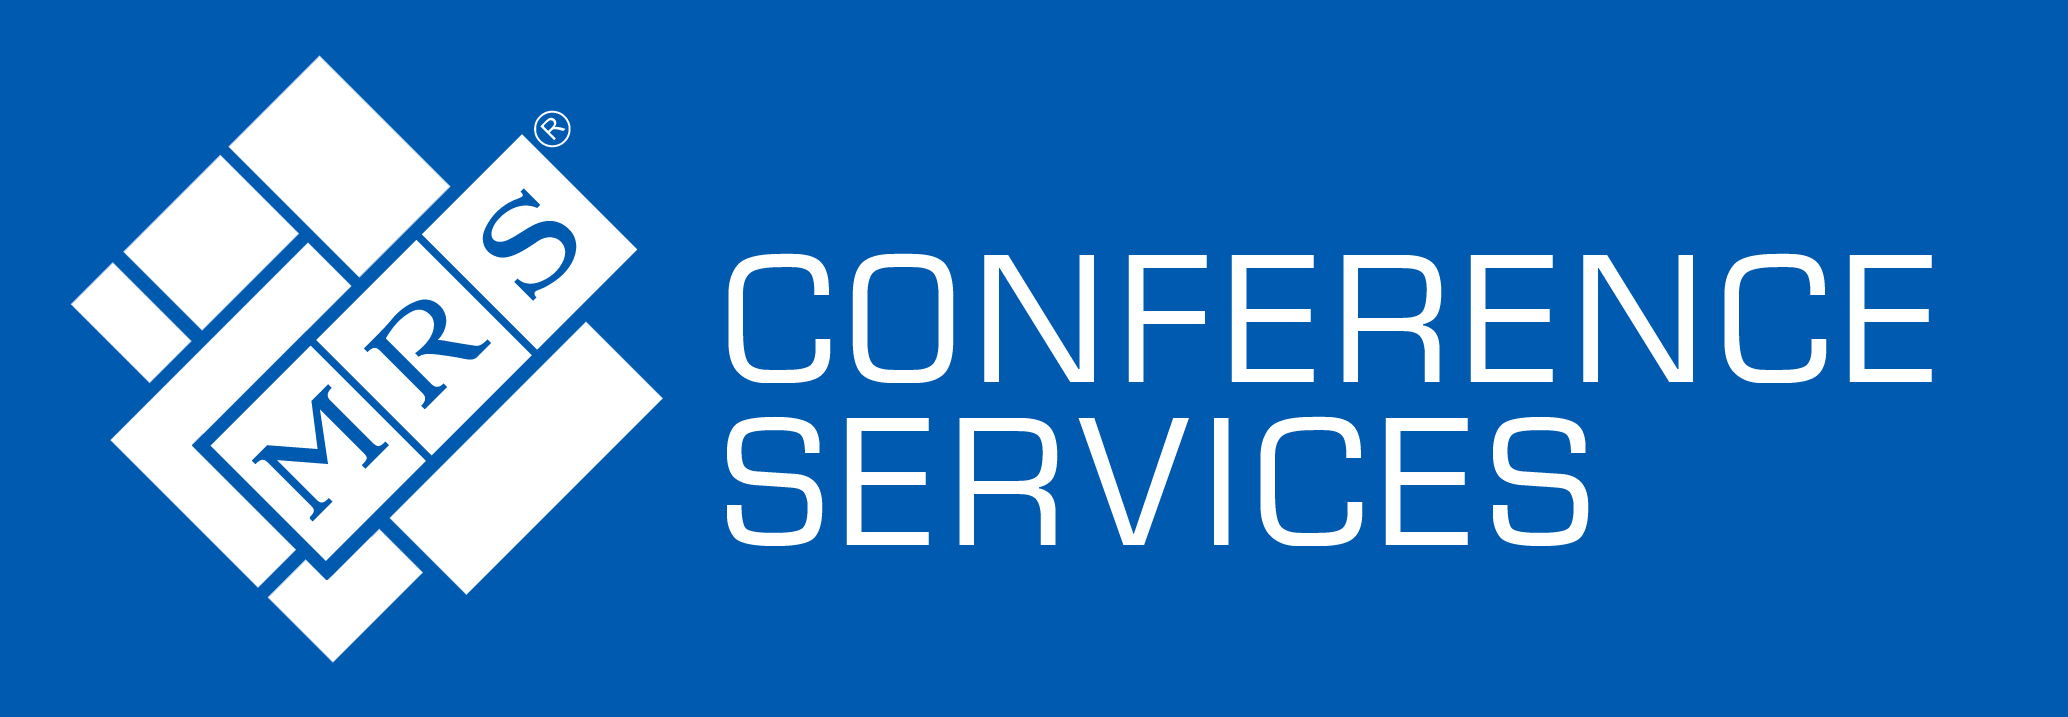 MRS-Conference-Services-Logo